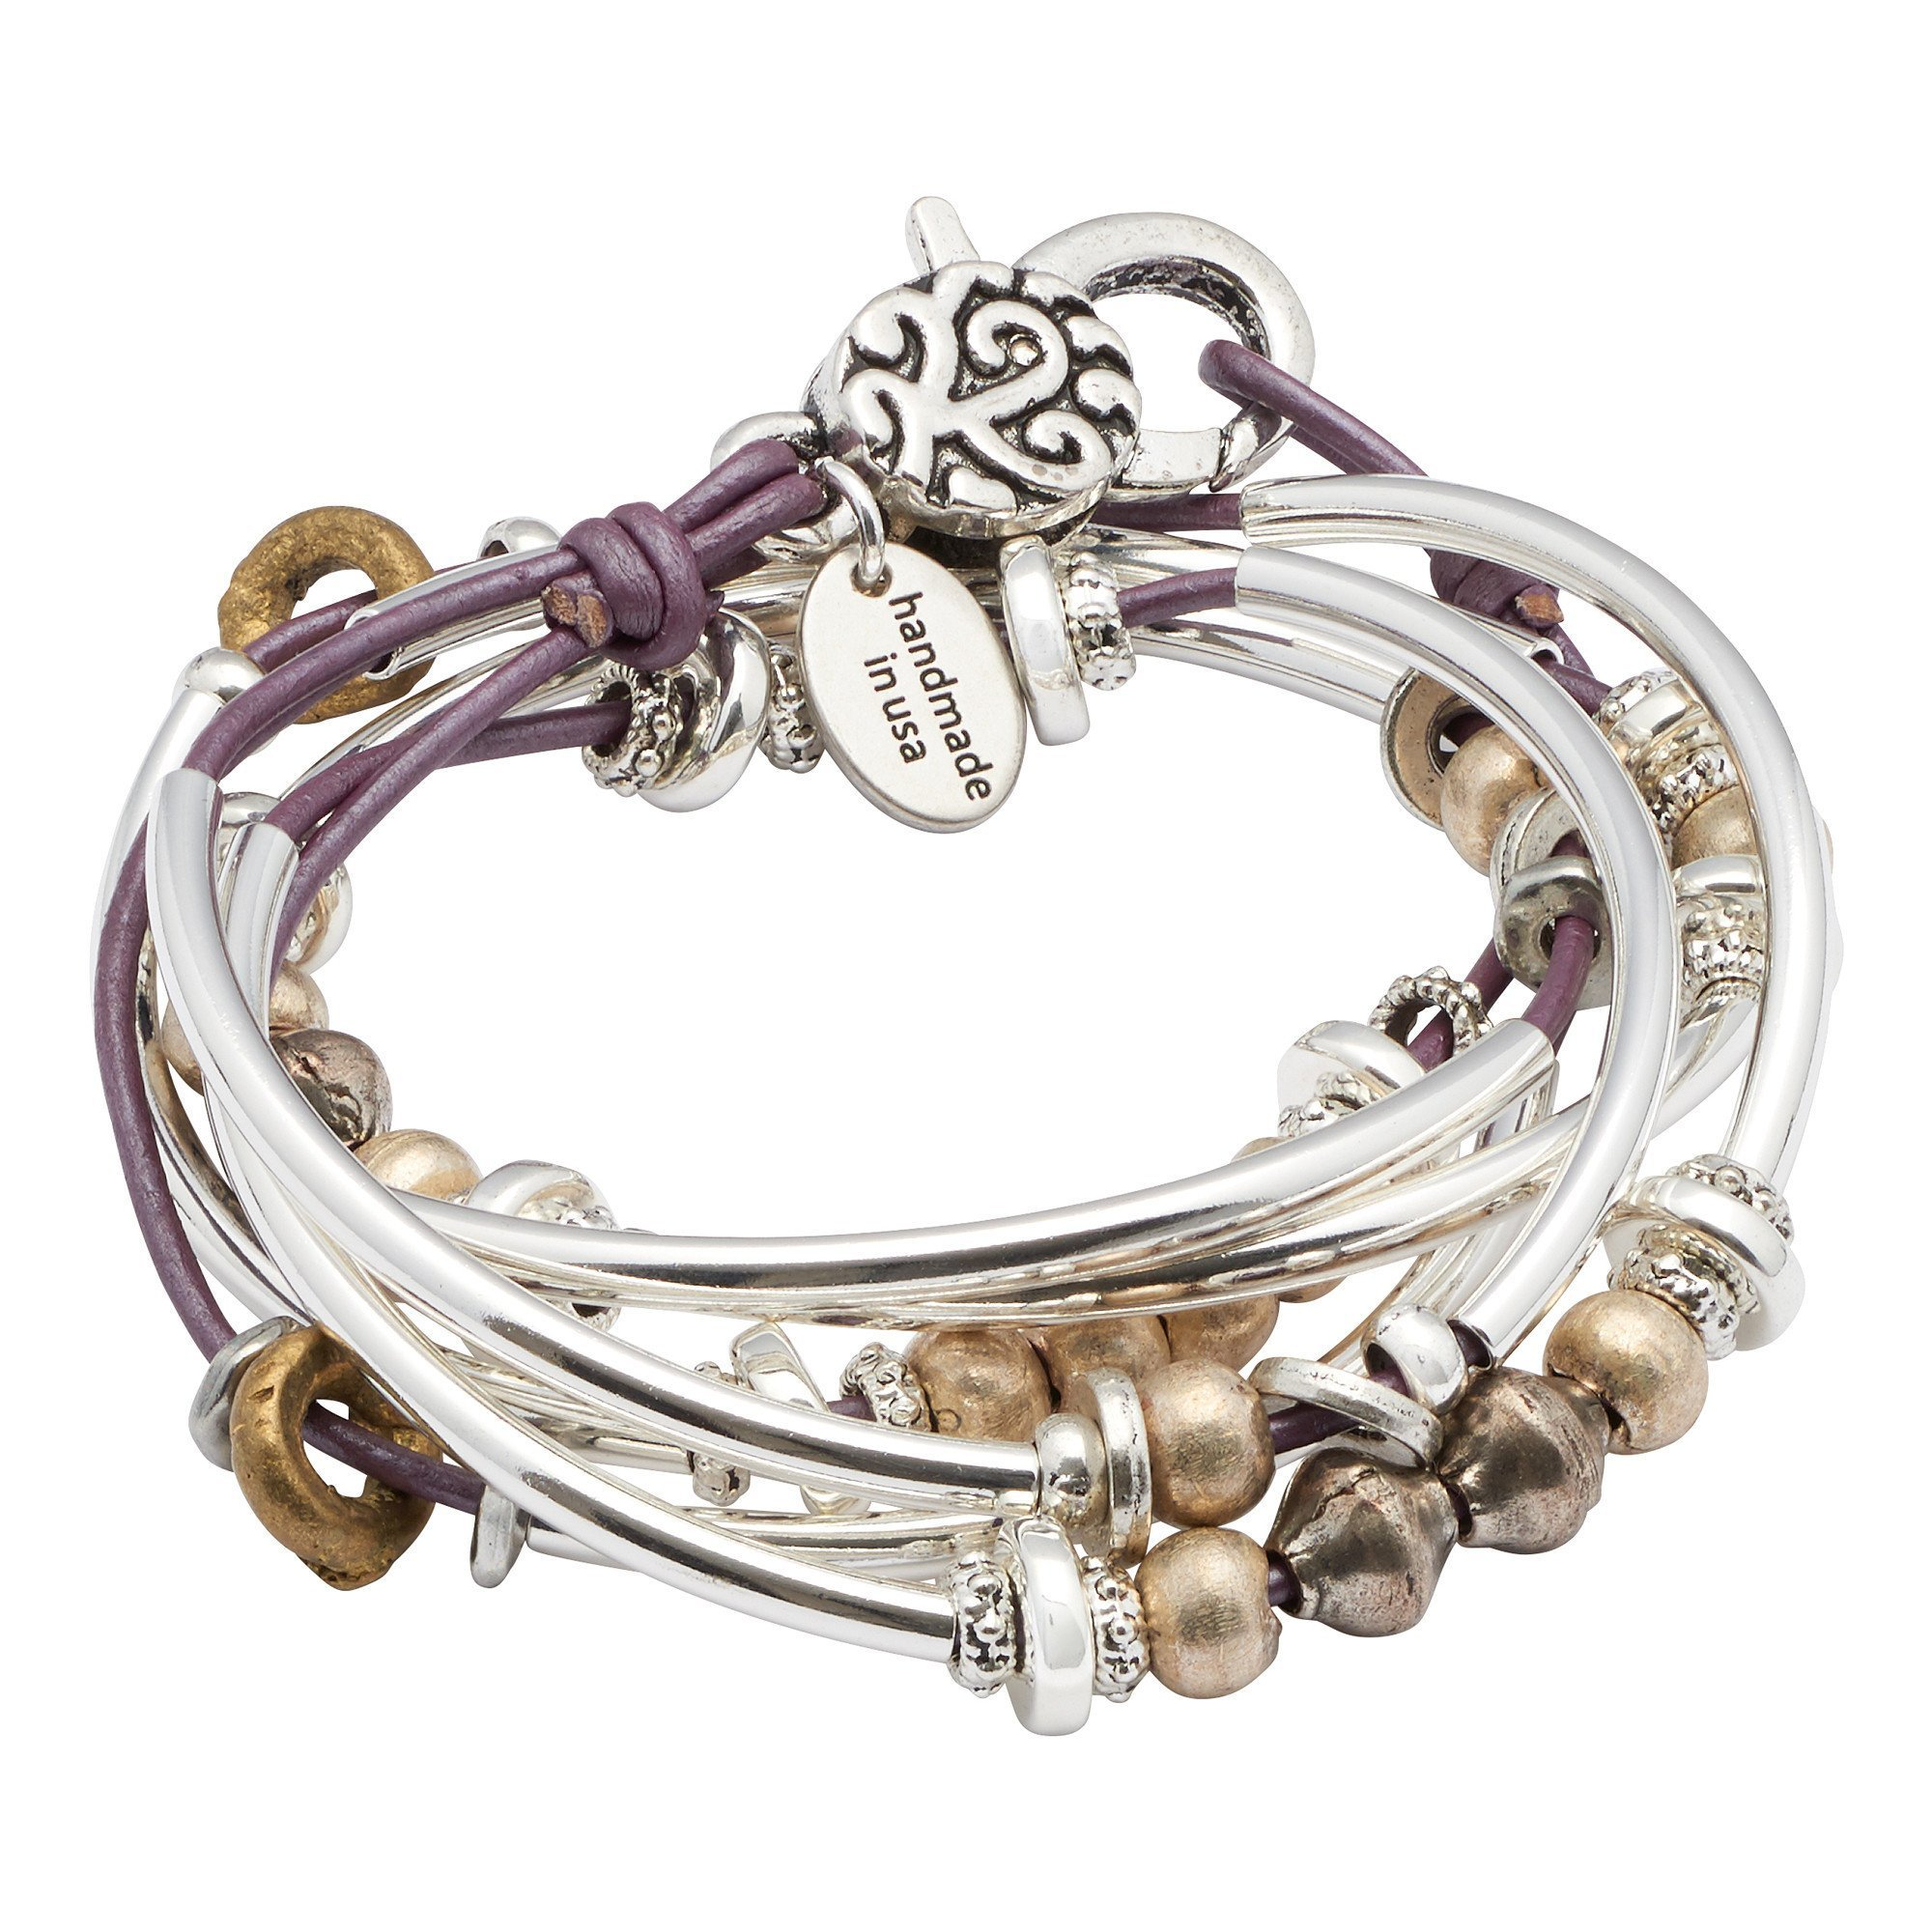 Bella Silverplate Petite Bracelet Necklace with Metallic Berry Leather Wrap by Lizzy James